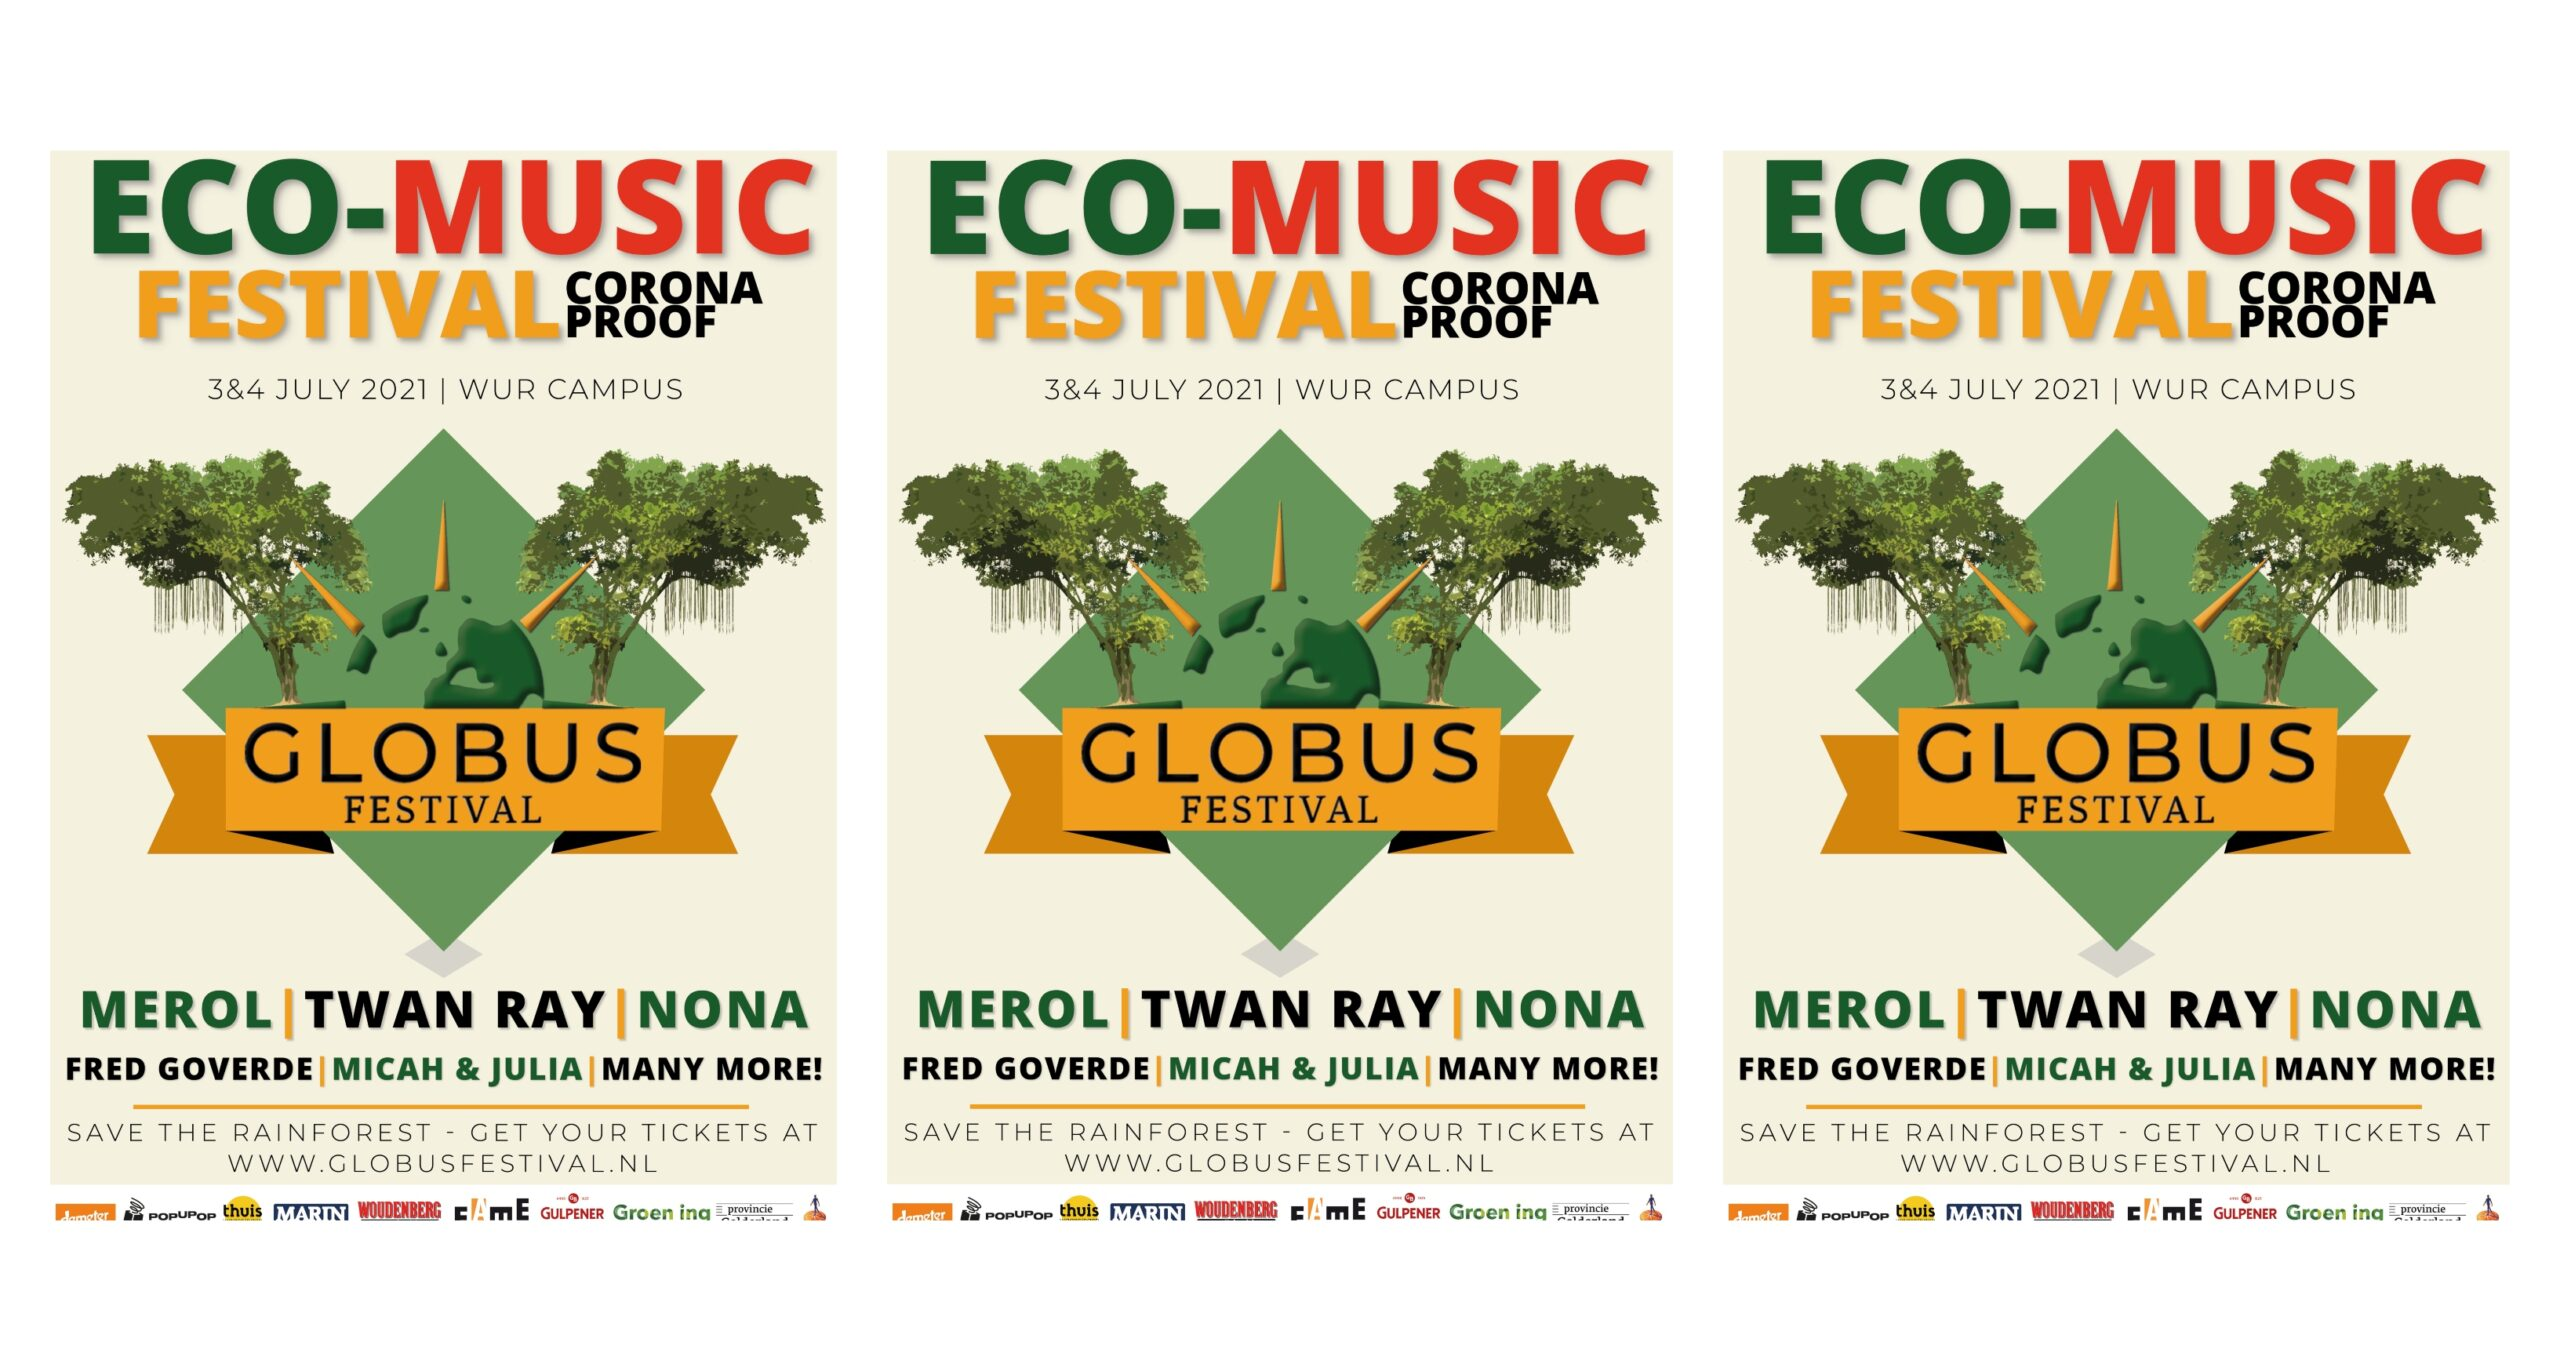 A festival on campus?